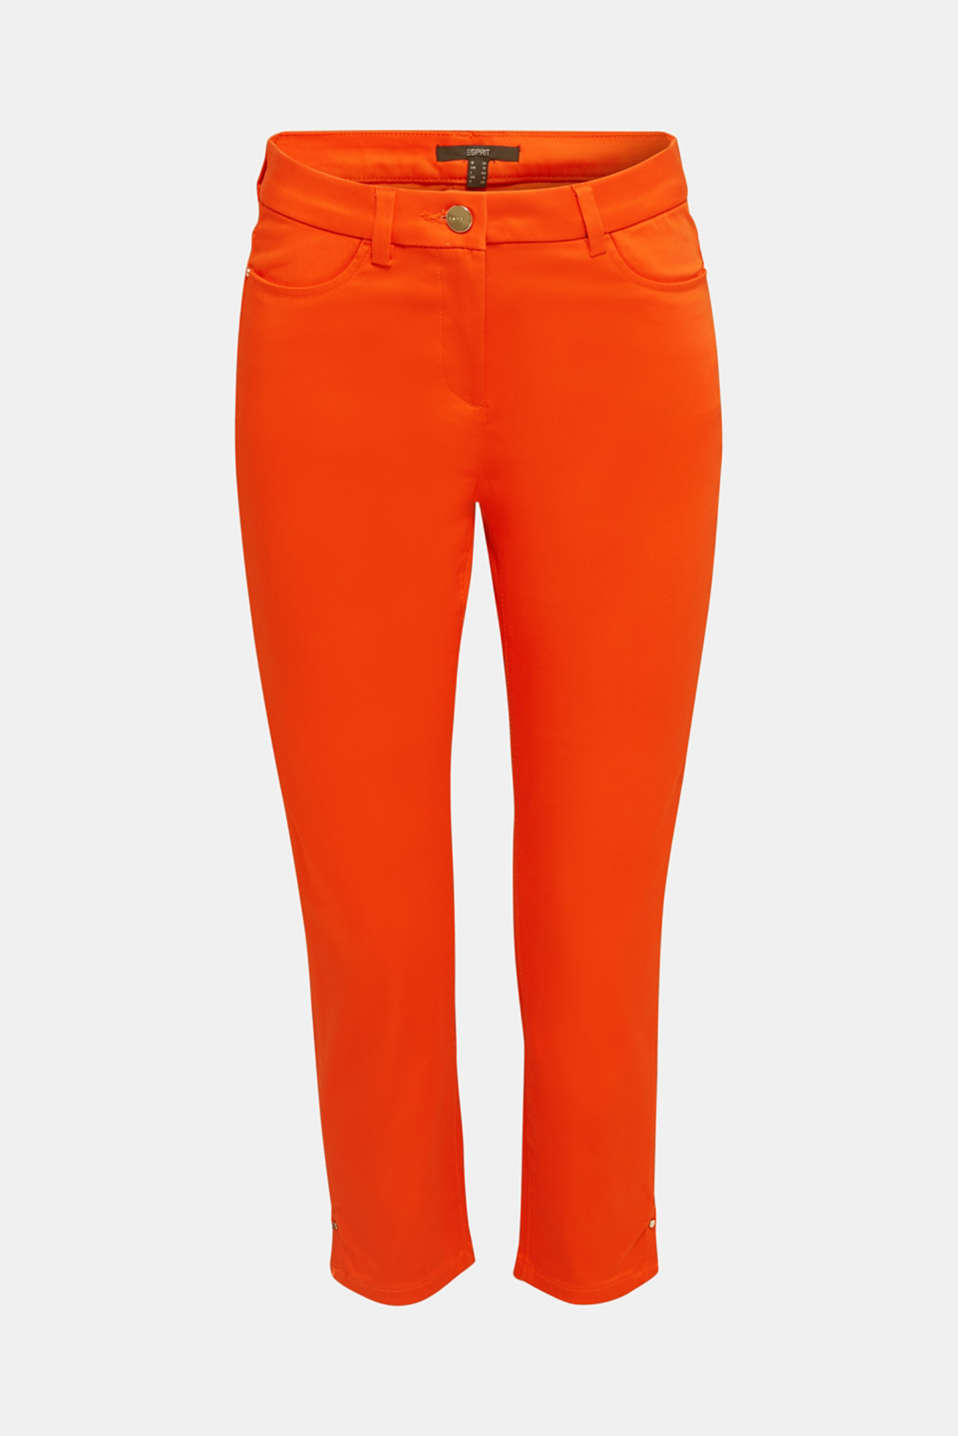 Knee-length satin business trousers, RED ORANGE, detail image number 7